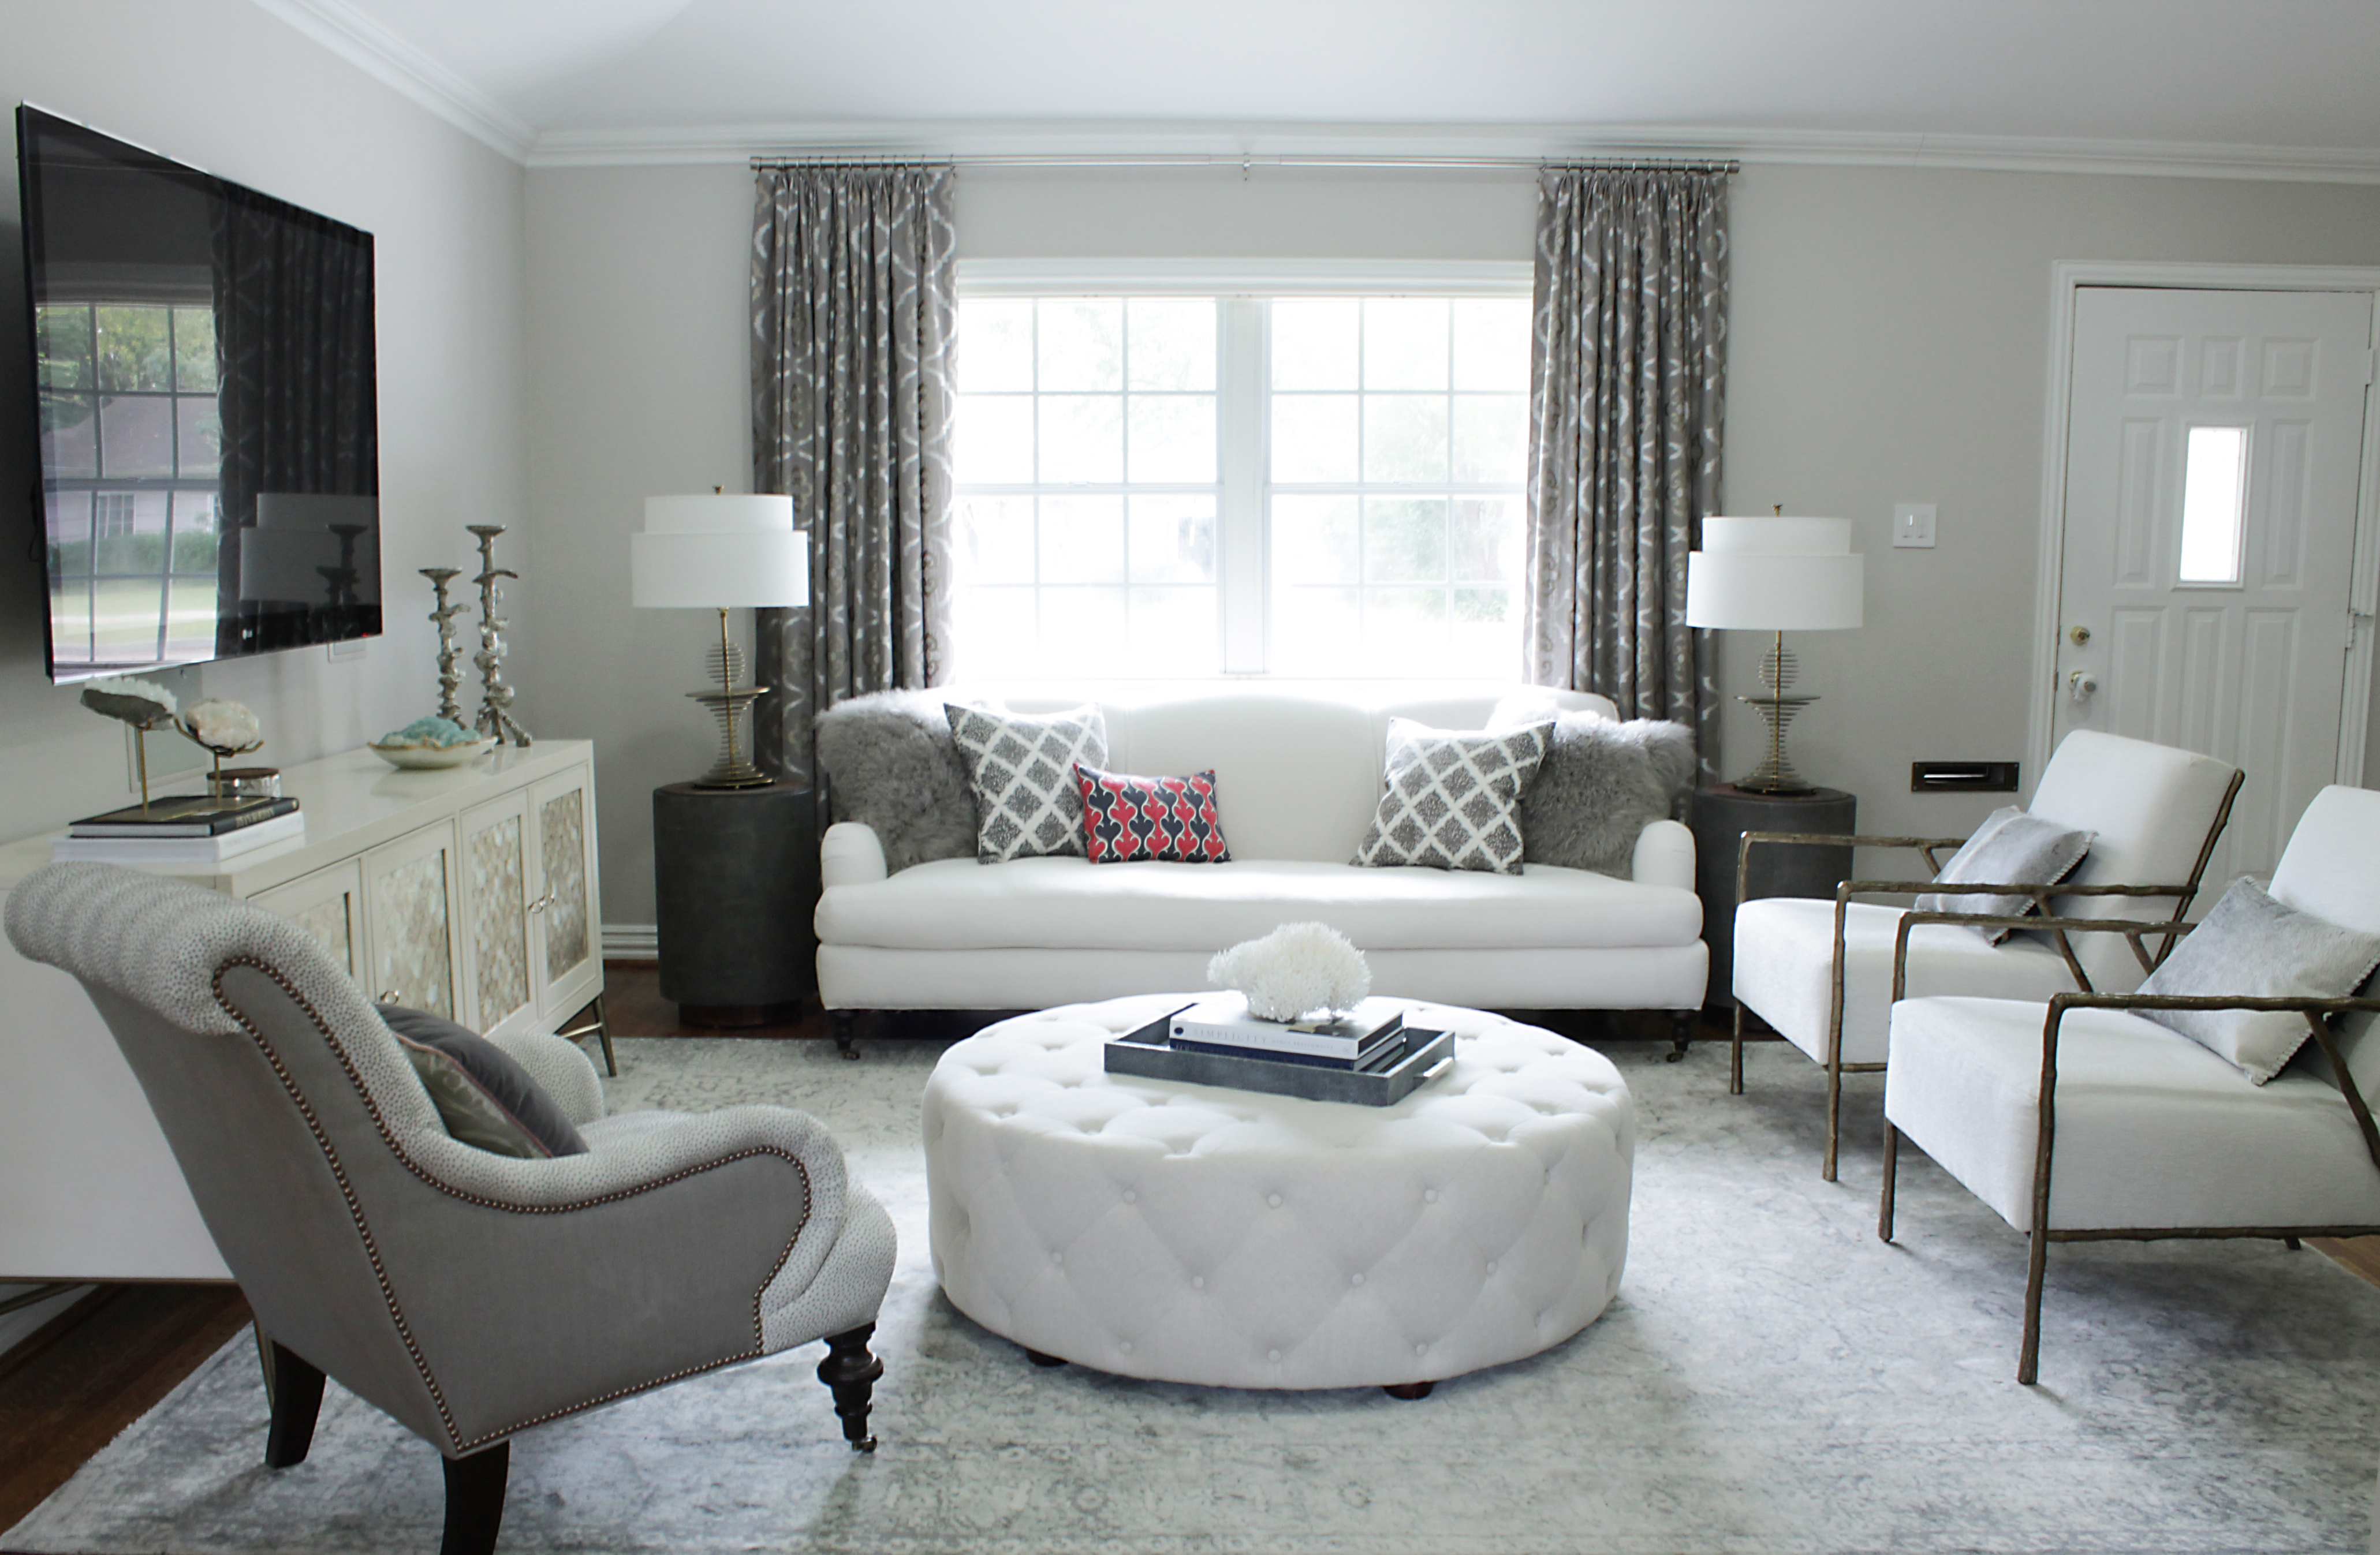 Before &, After: An Elegant, Budget-Friendly Living Room